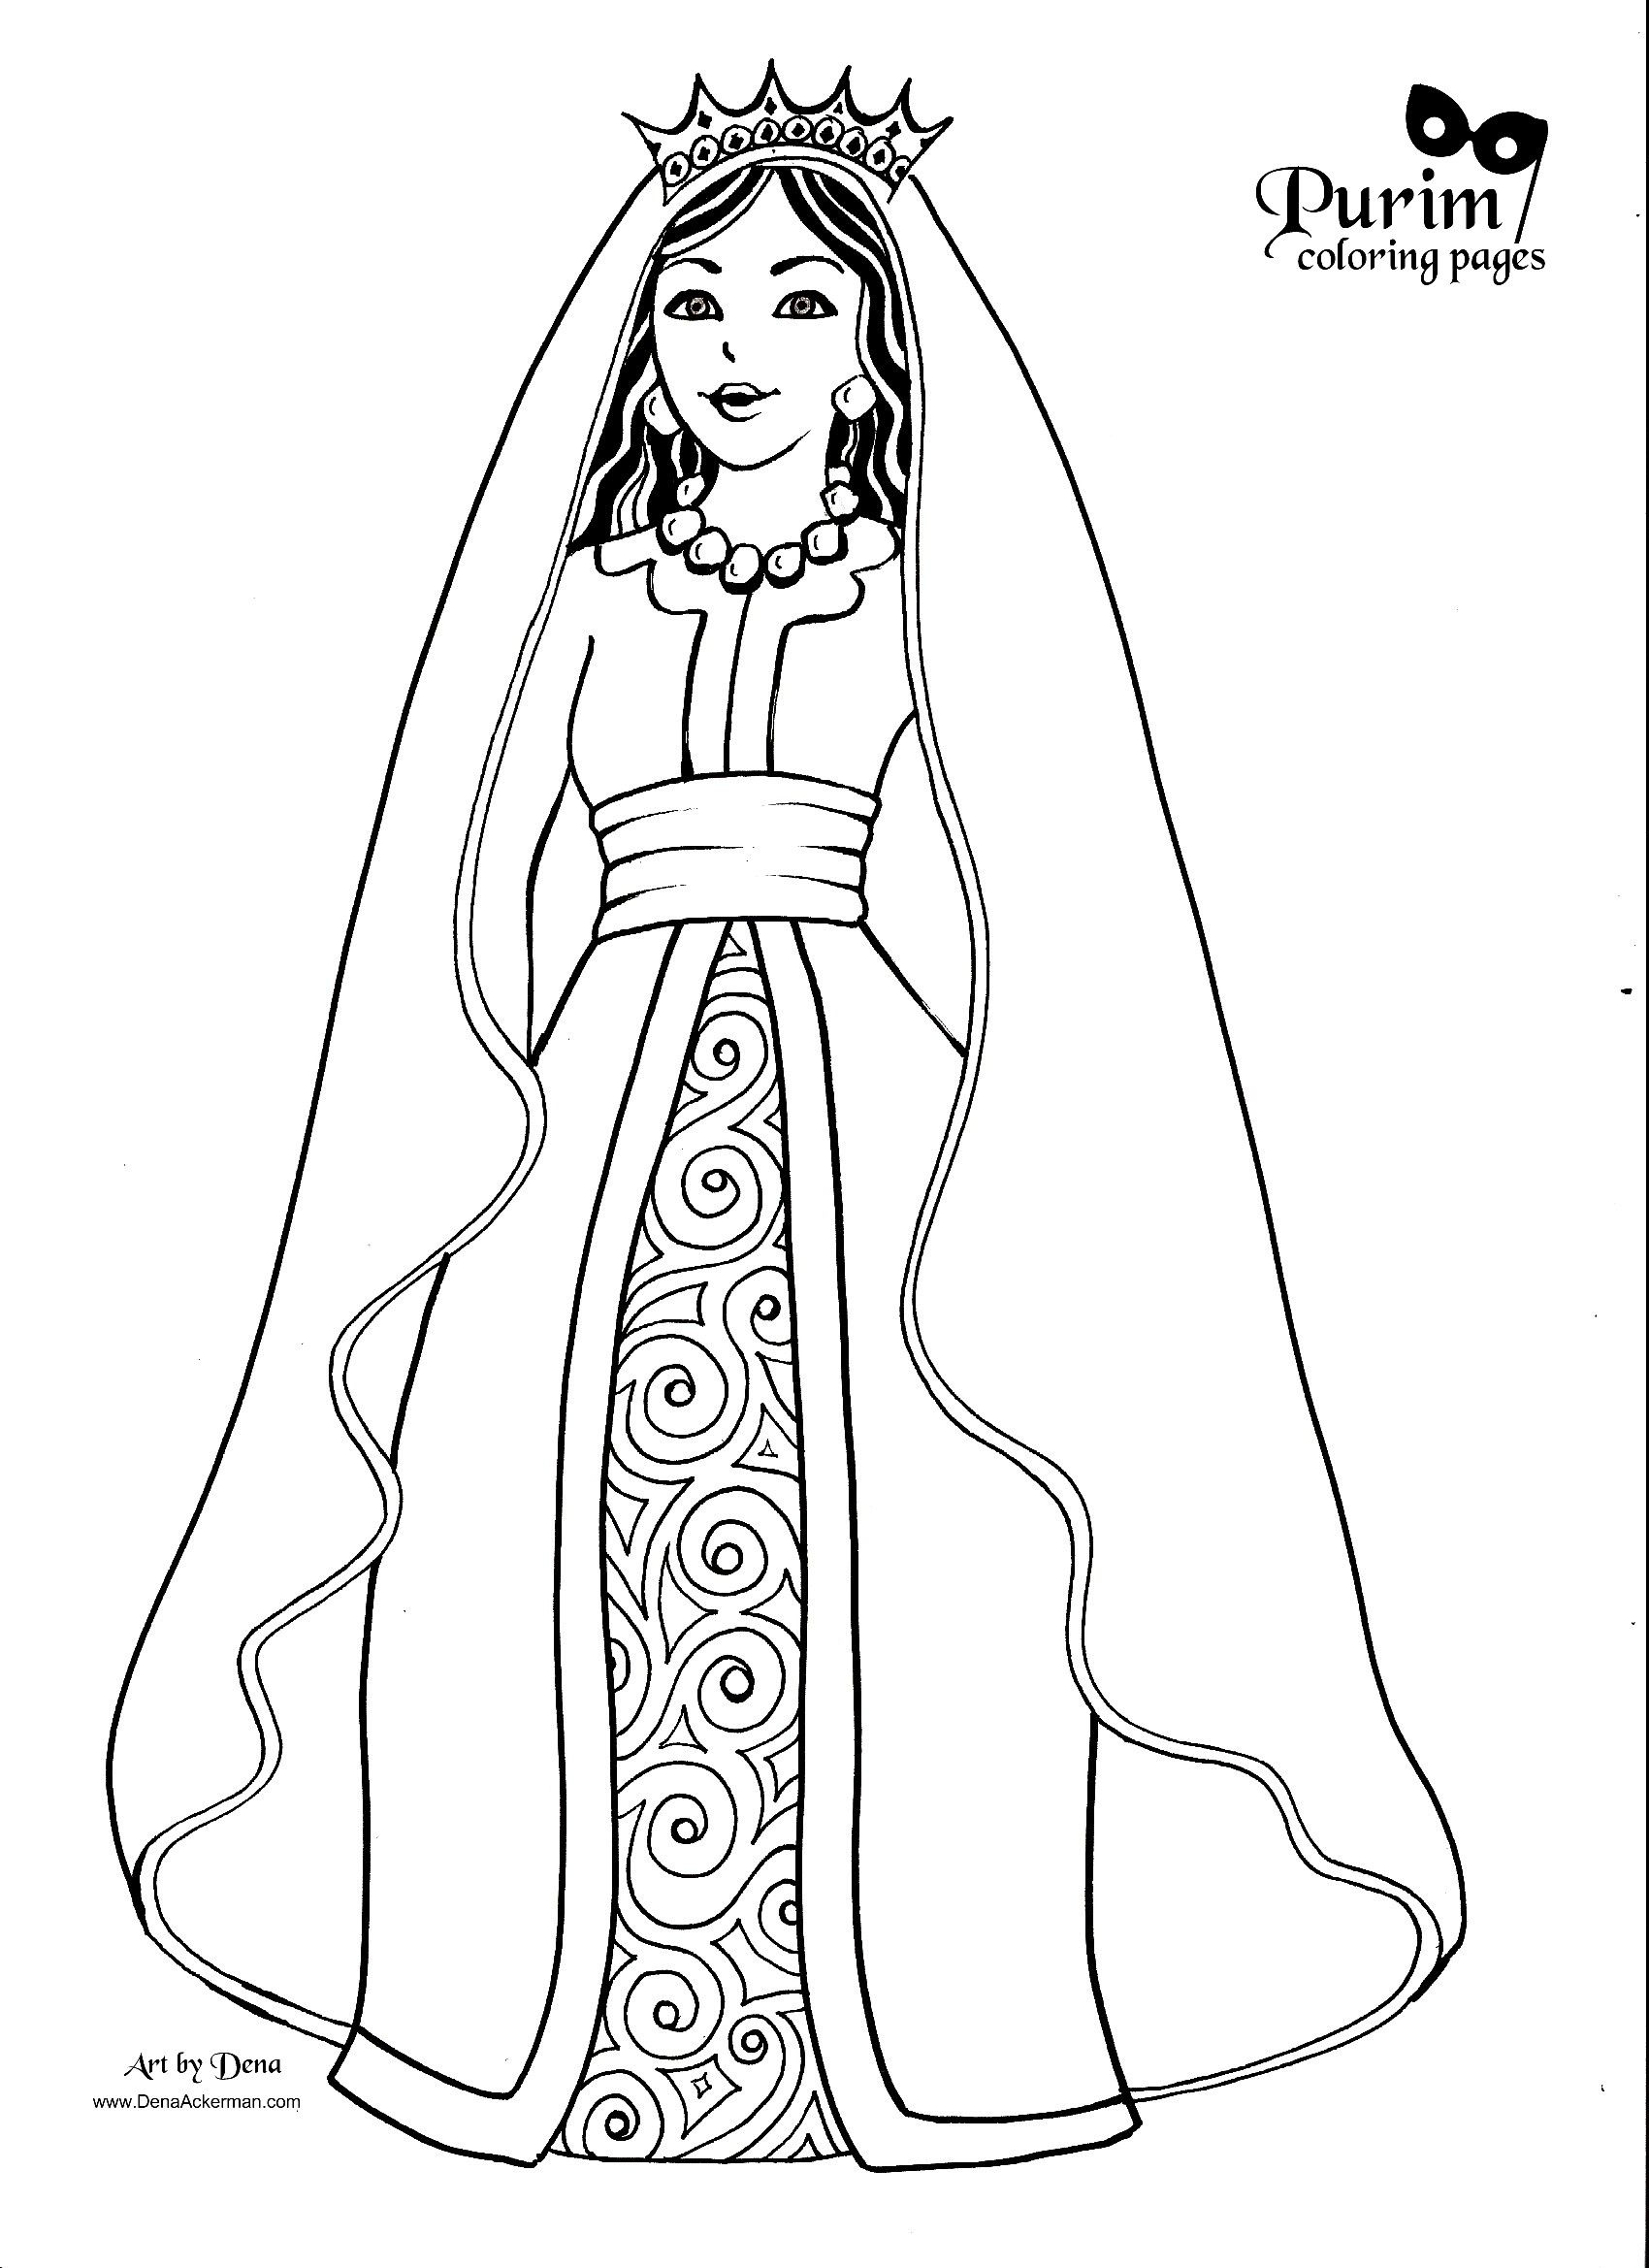 free bible coloring pages queen esther yahoo image search results - Coloring Page Queen